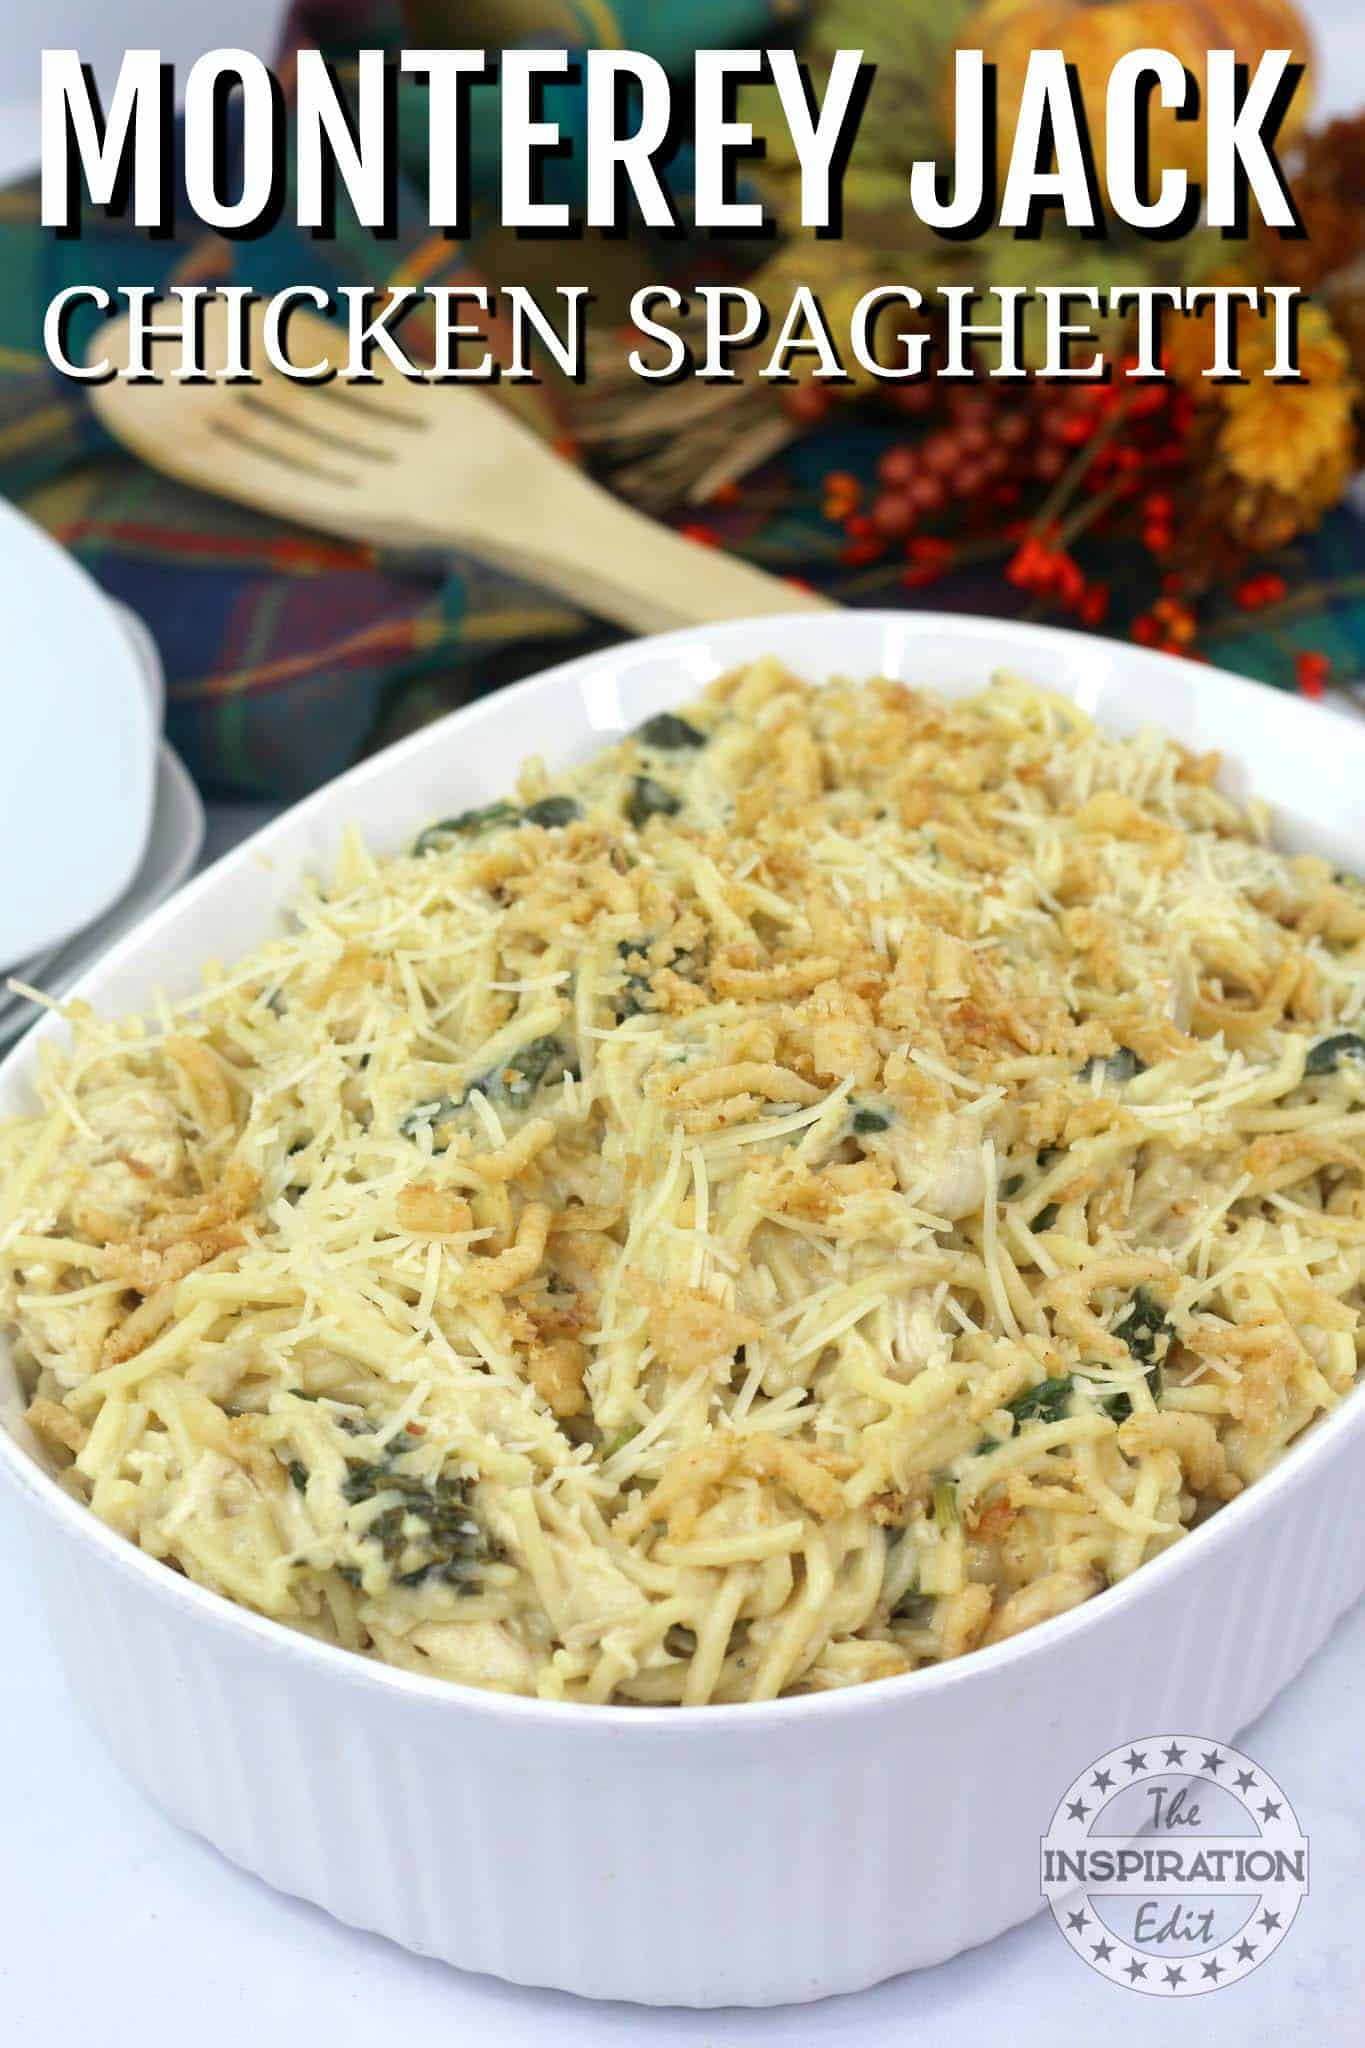 Monterey jack chicken spaghetti recipe